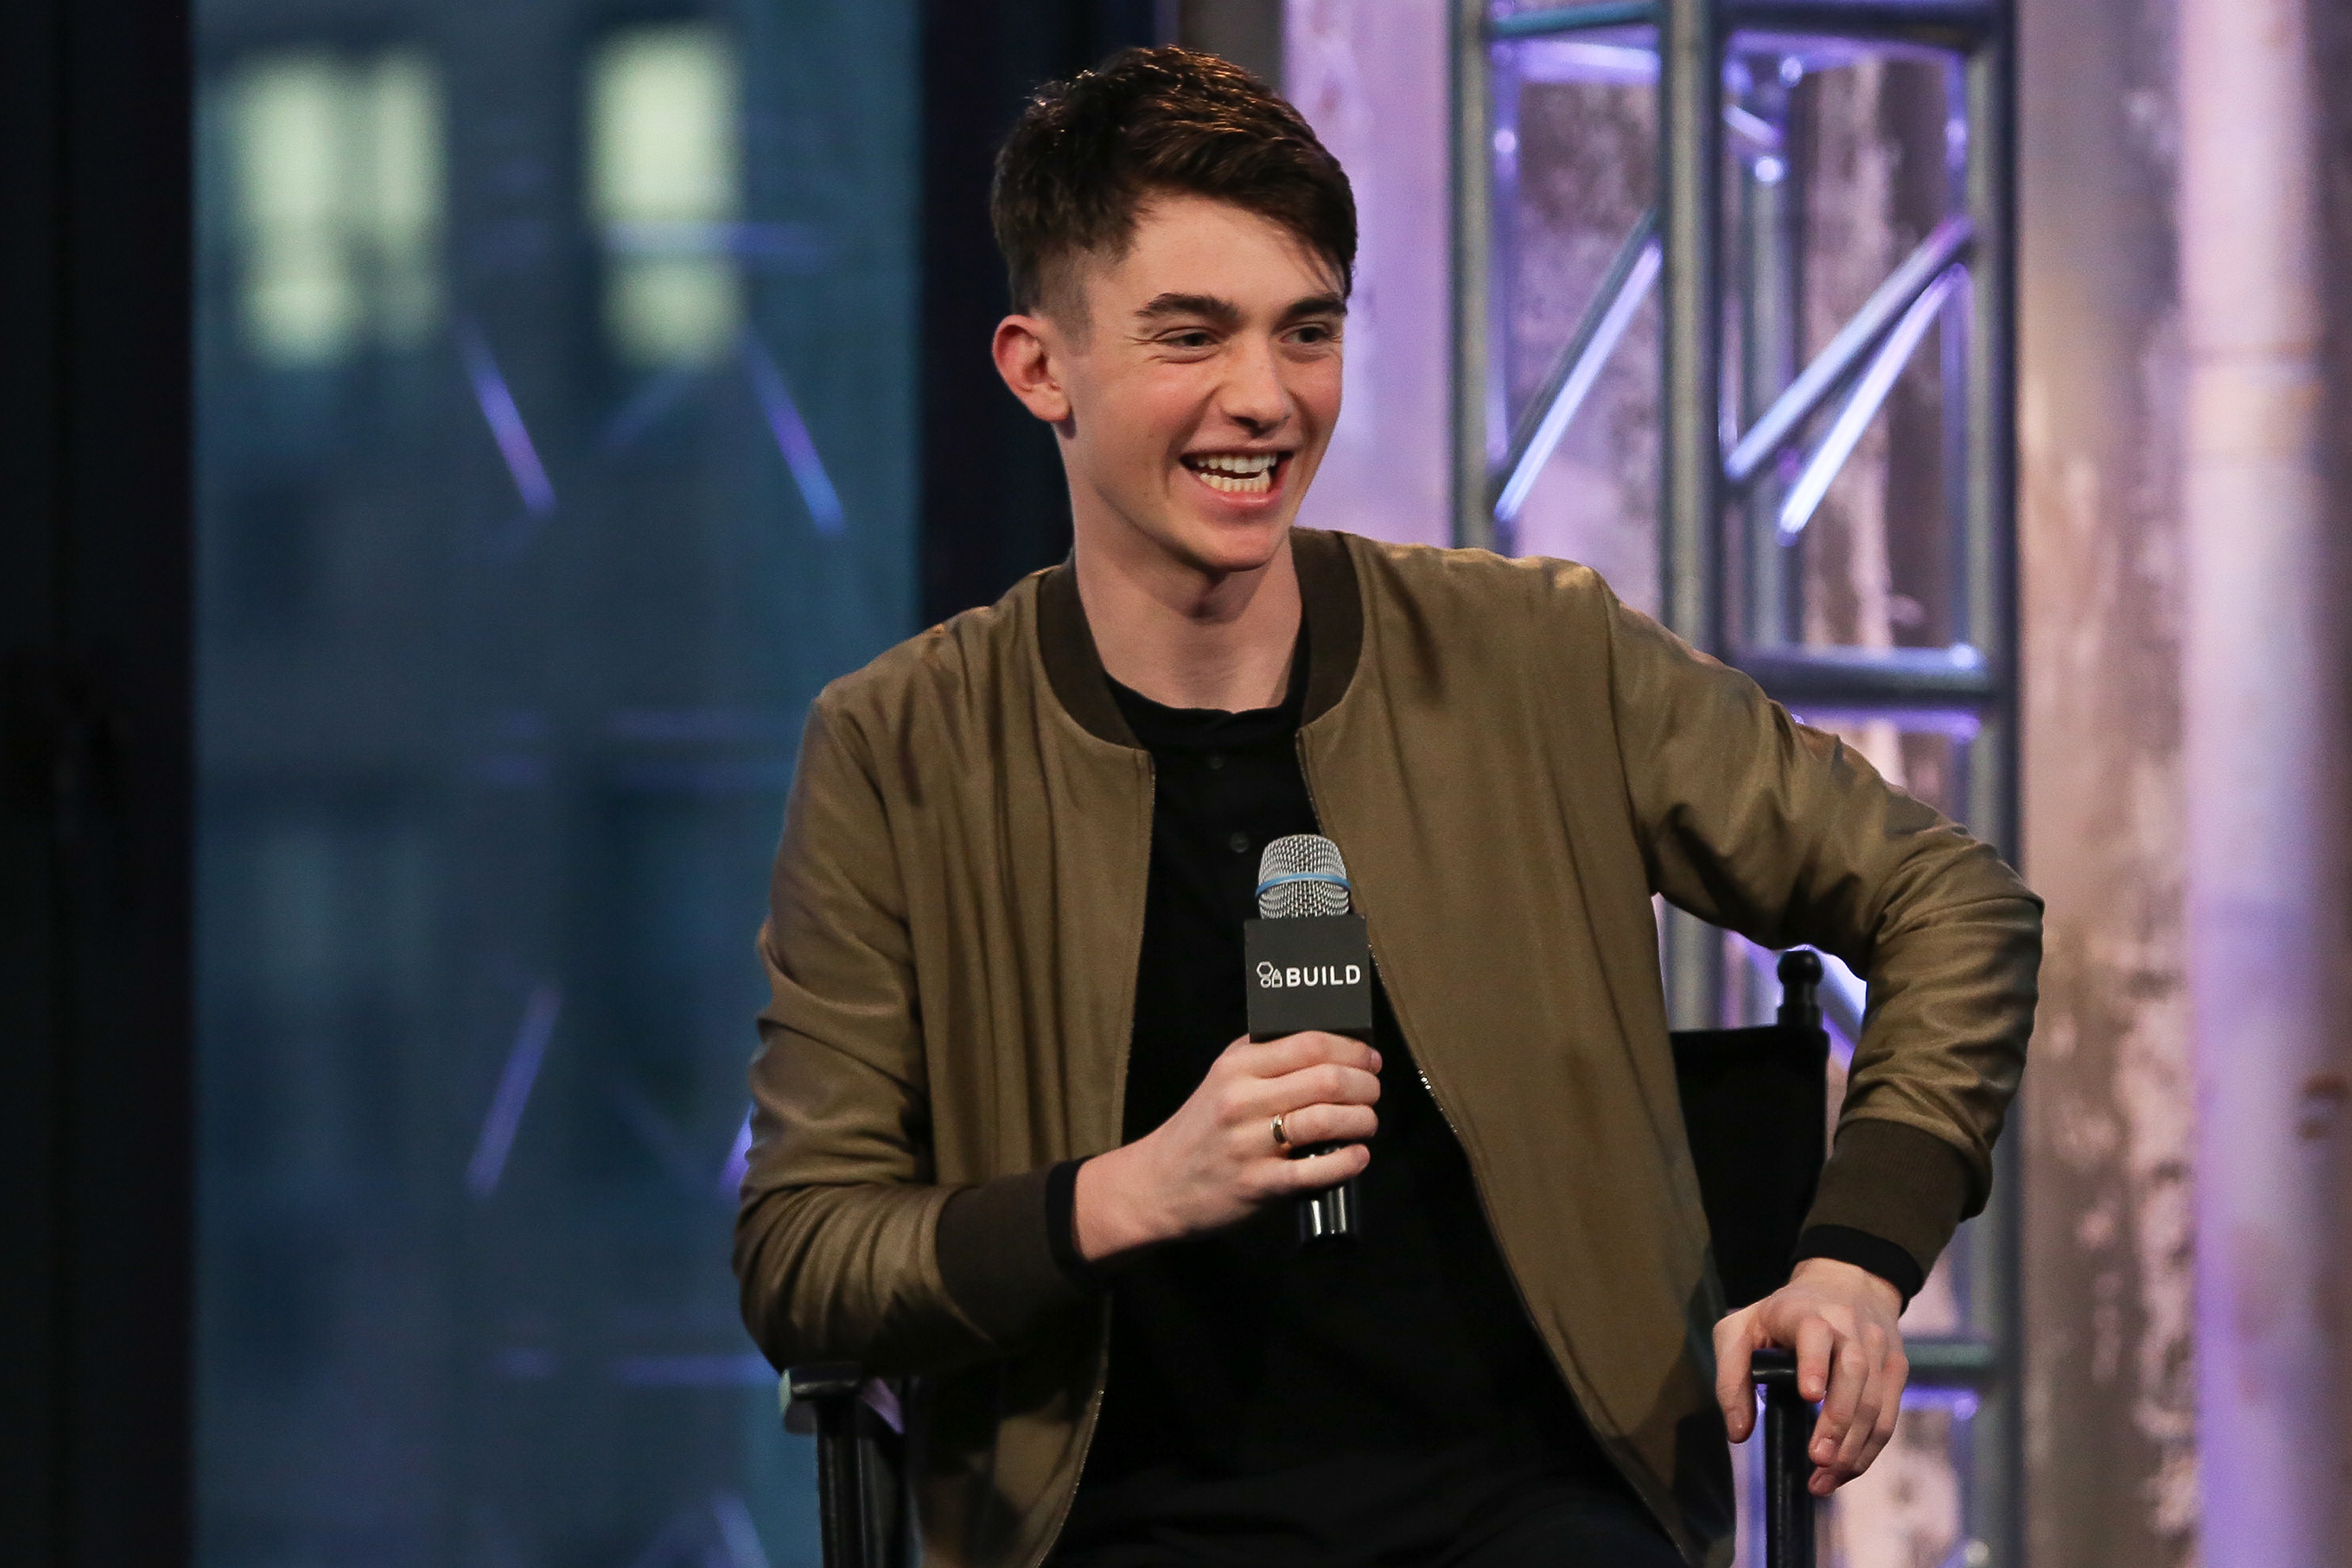 greyson chance waiting outside the lines